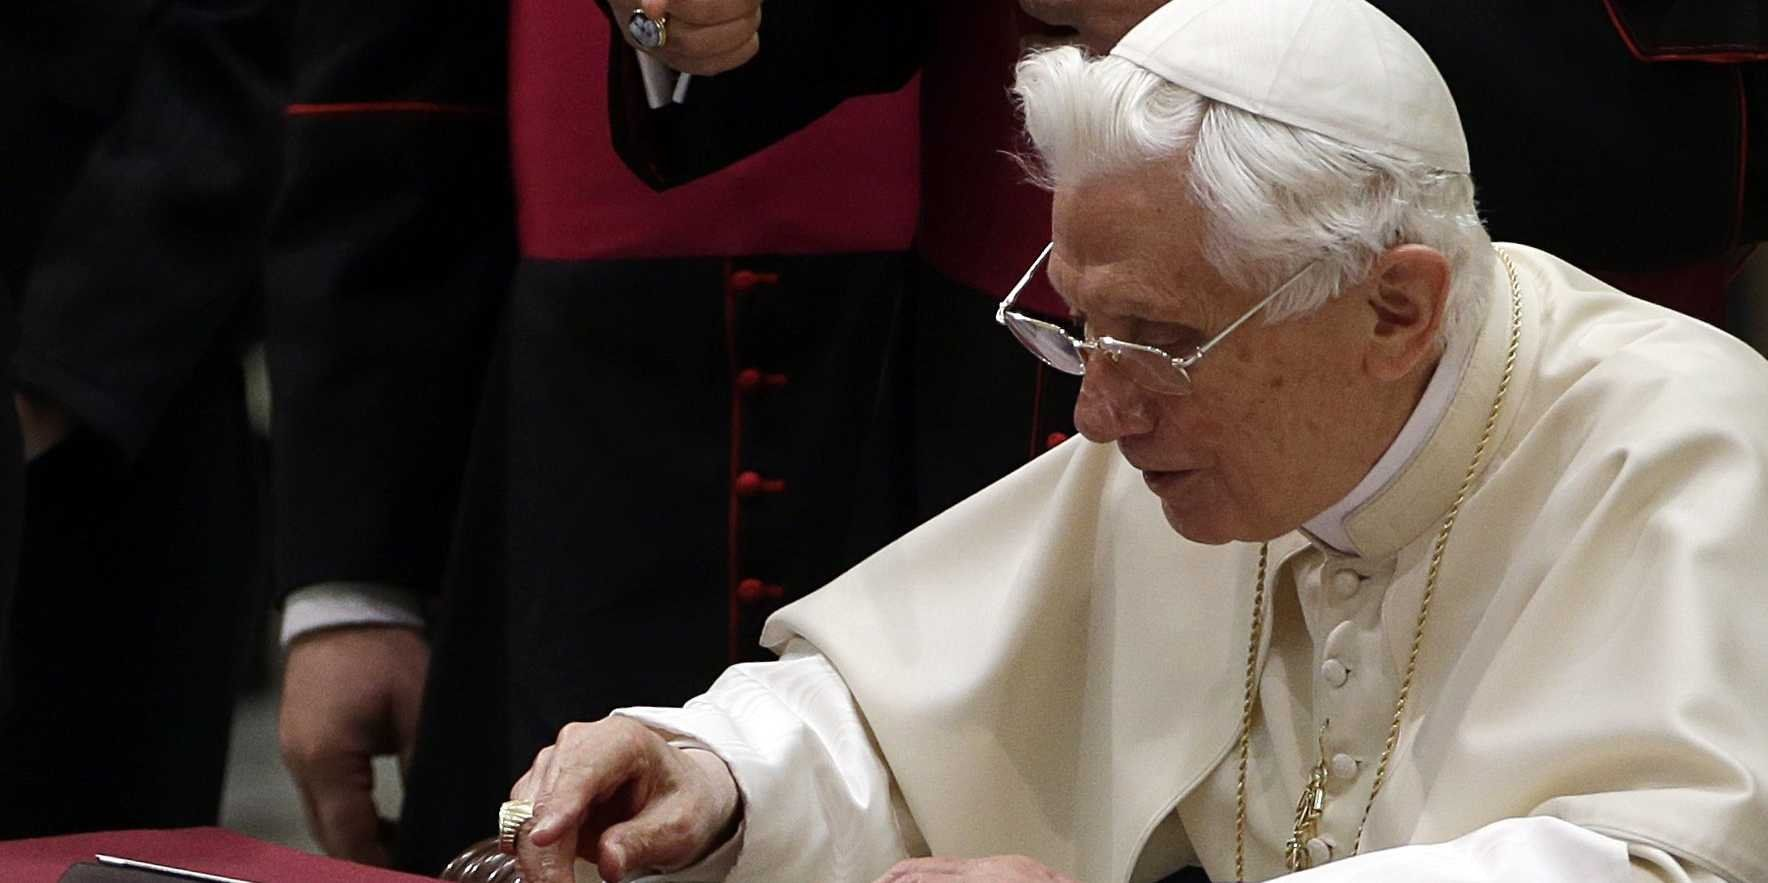 Breaking News: Pope Benedict in a very critical condition